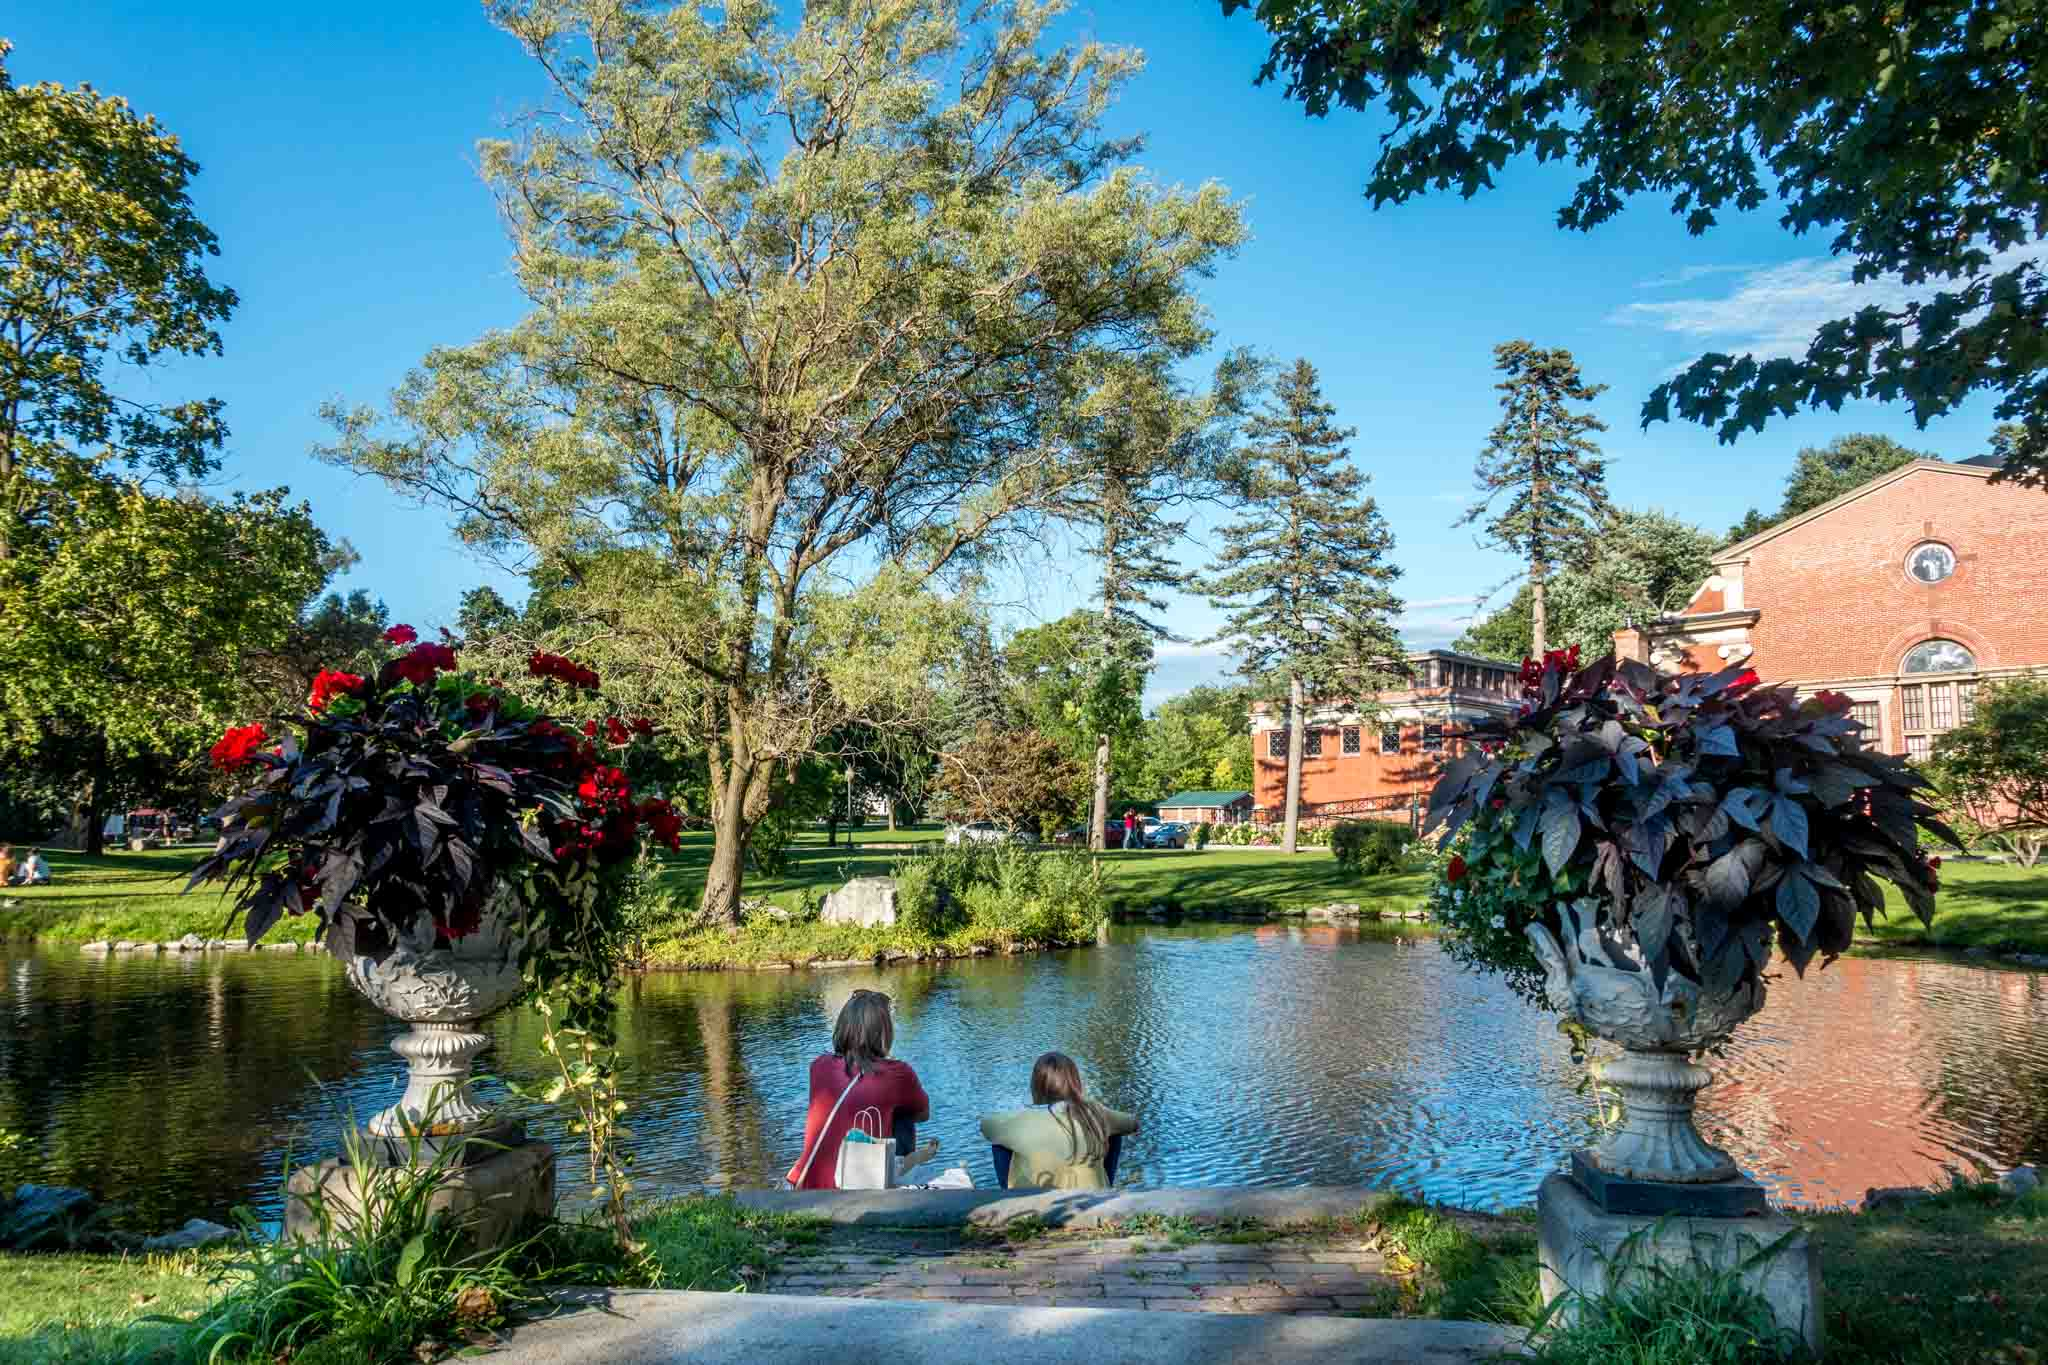 Visiting Congress Park is one of the best things to do in Saratoga Springs, New York